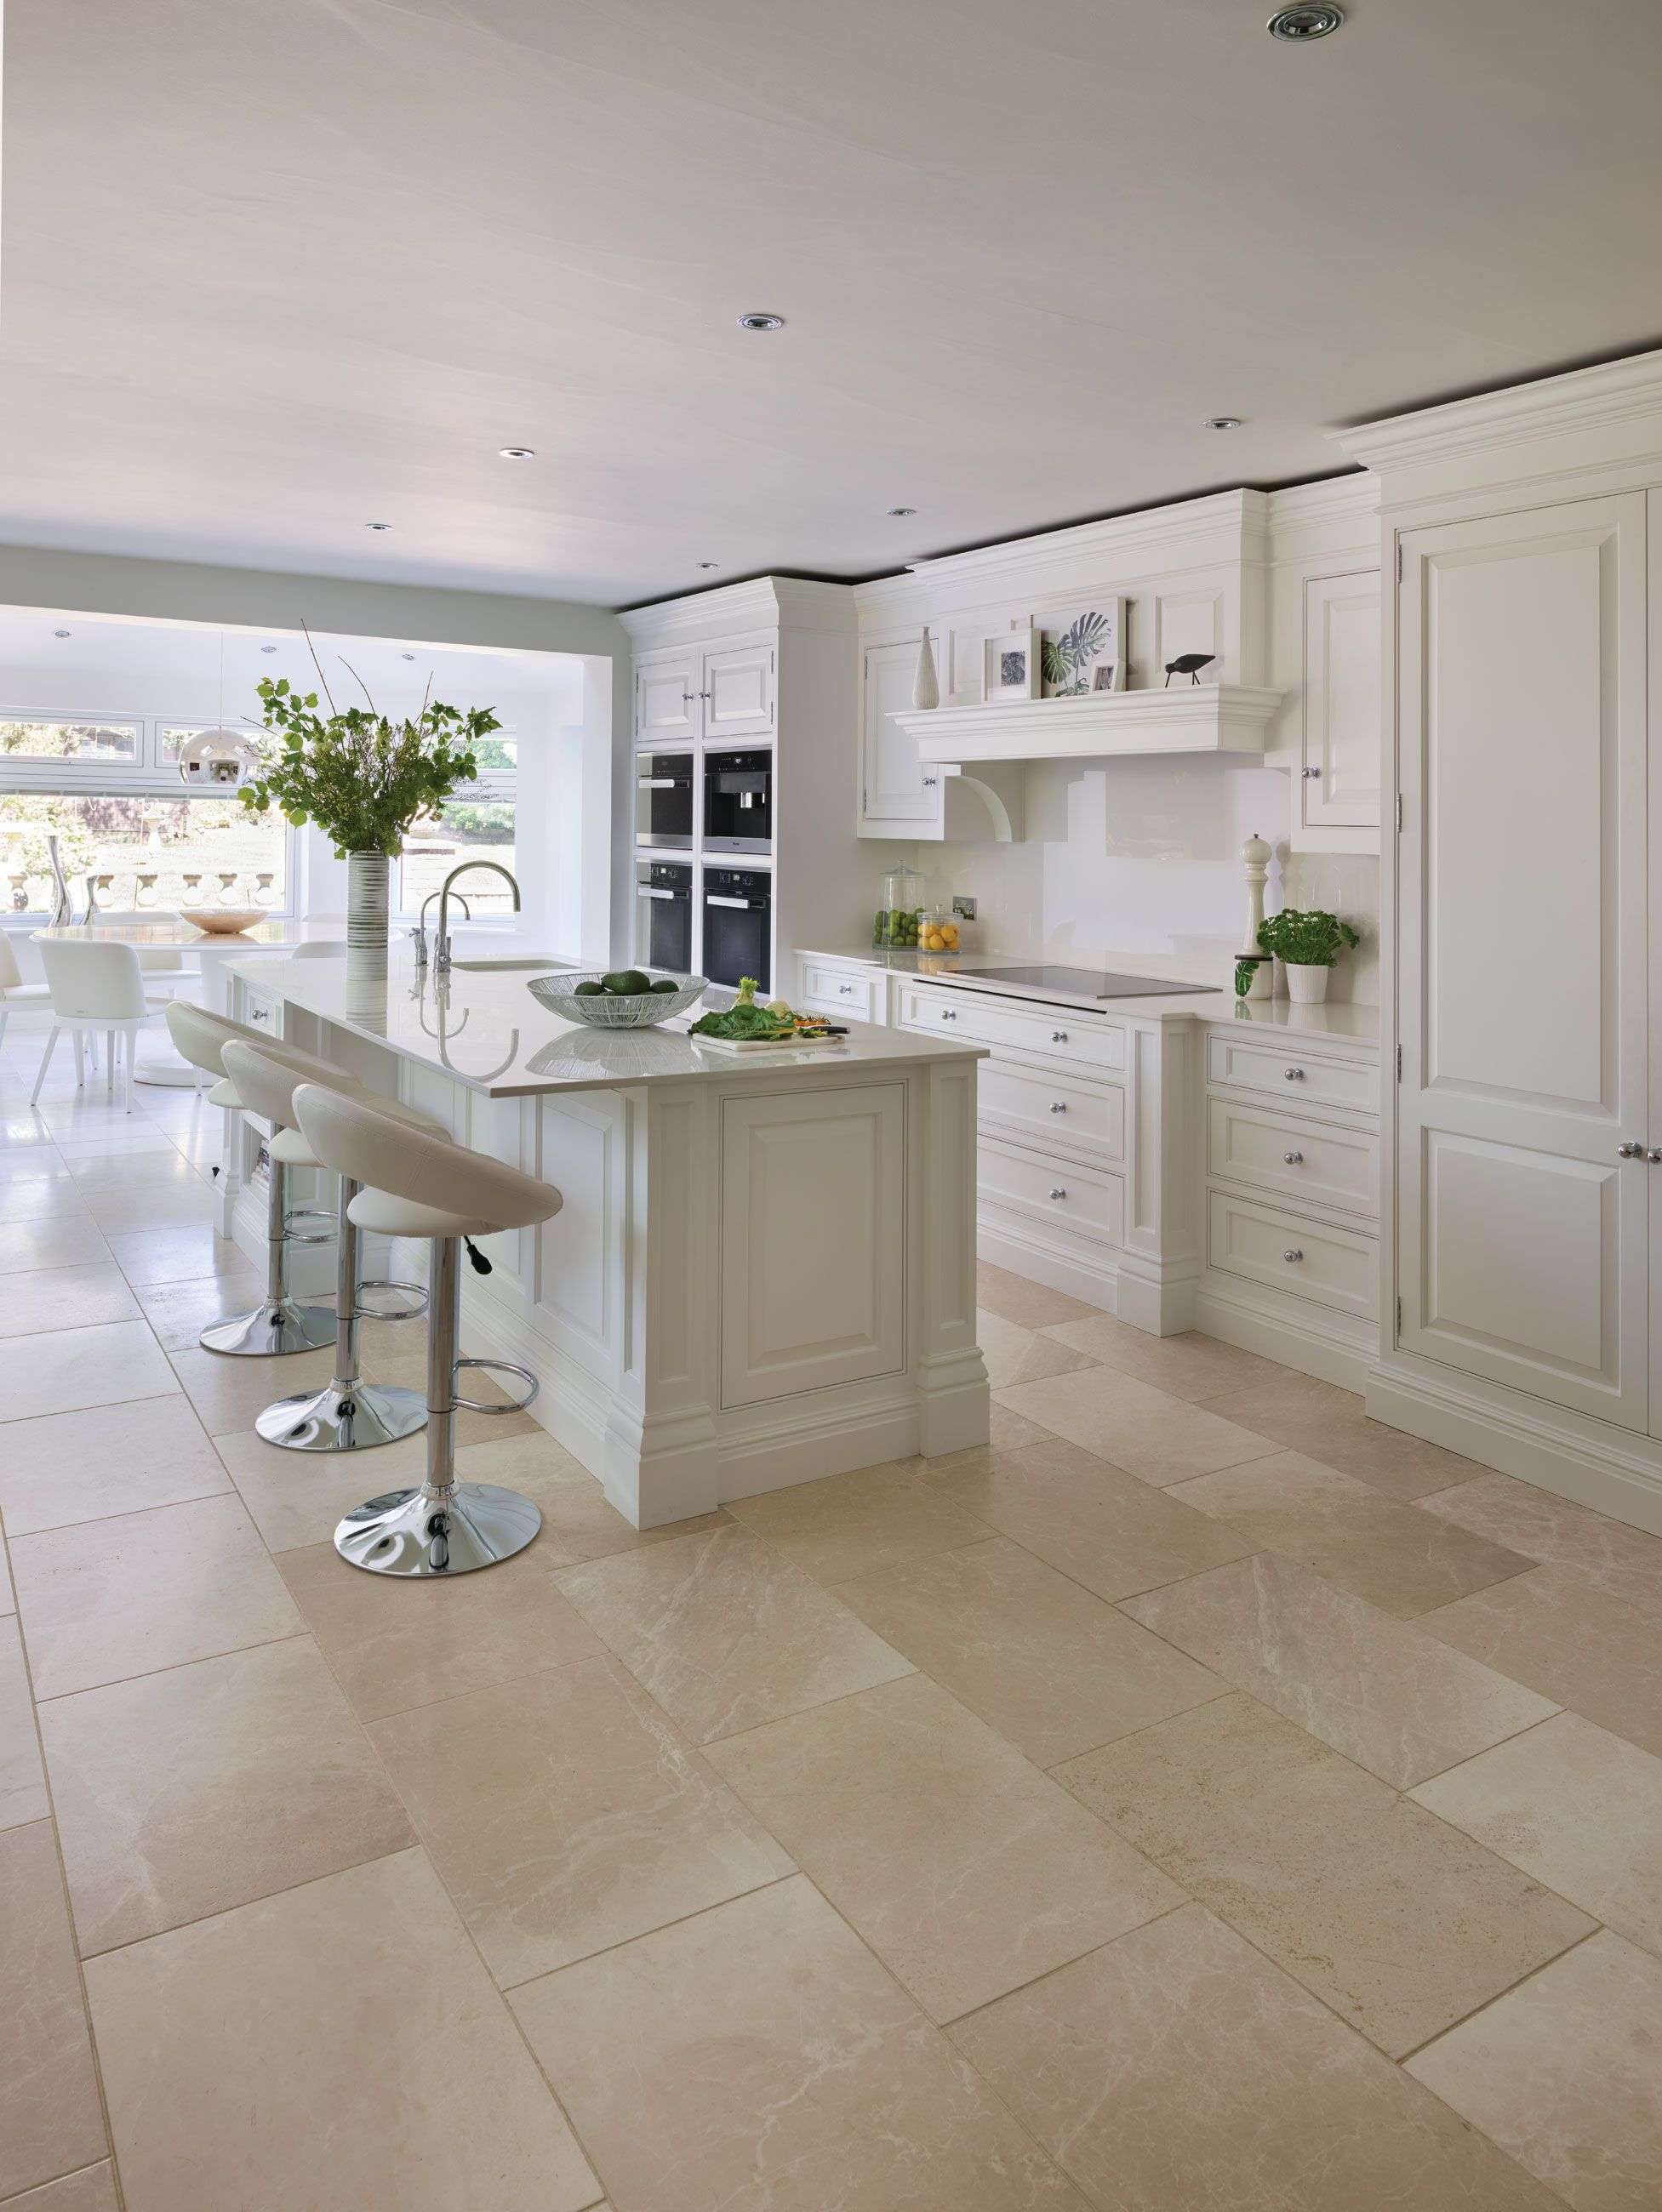 Our Latest Dream Family Kitchen From The Devine Co